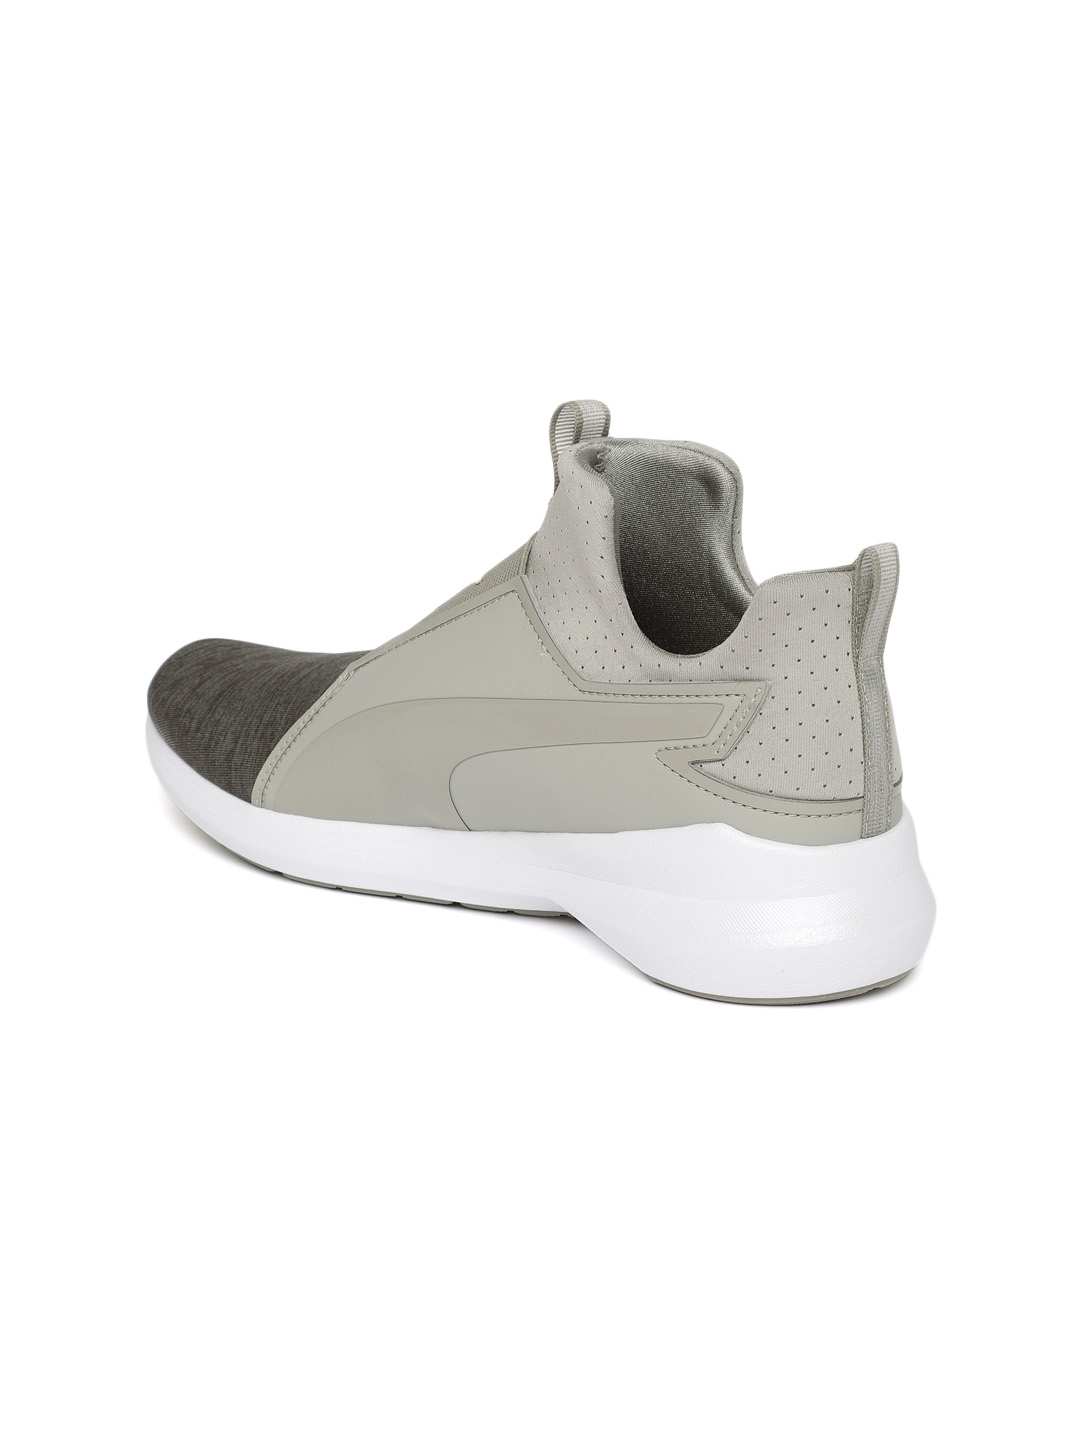 09fc9e91db1 Buy Puma Women Grey Rebel Mid EP Q2 Slip On Sneakers - Casual Shoes ...